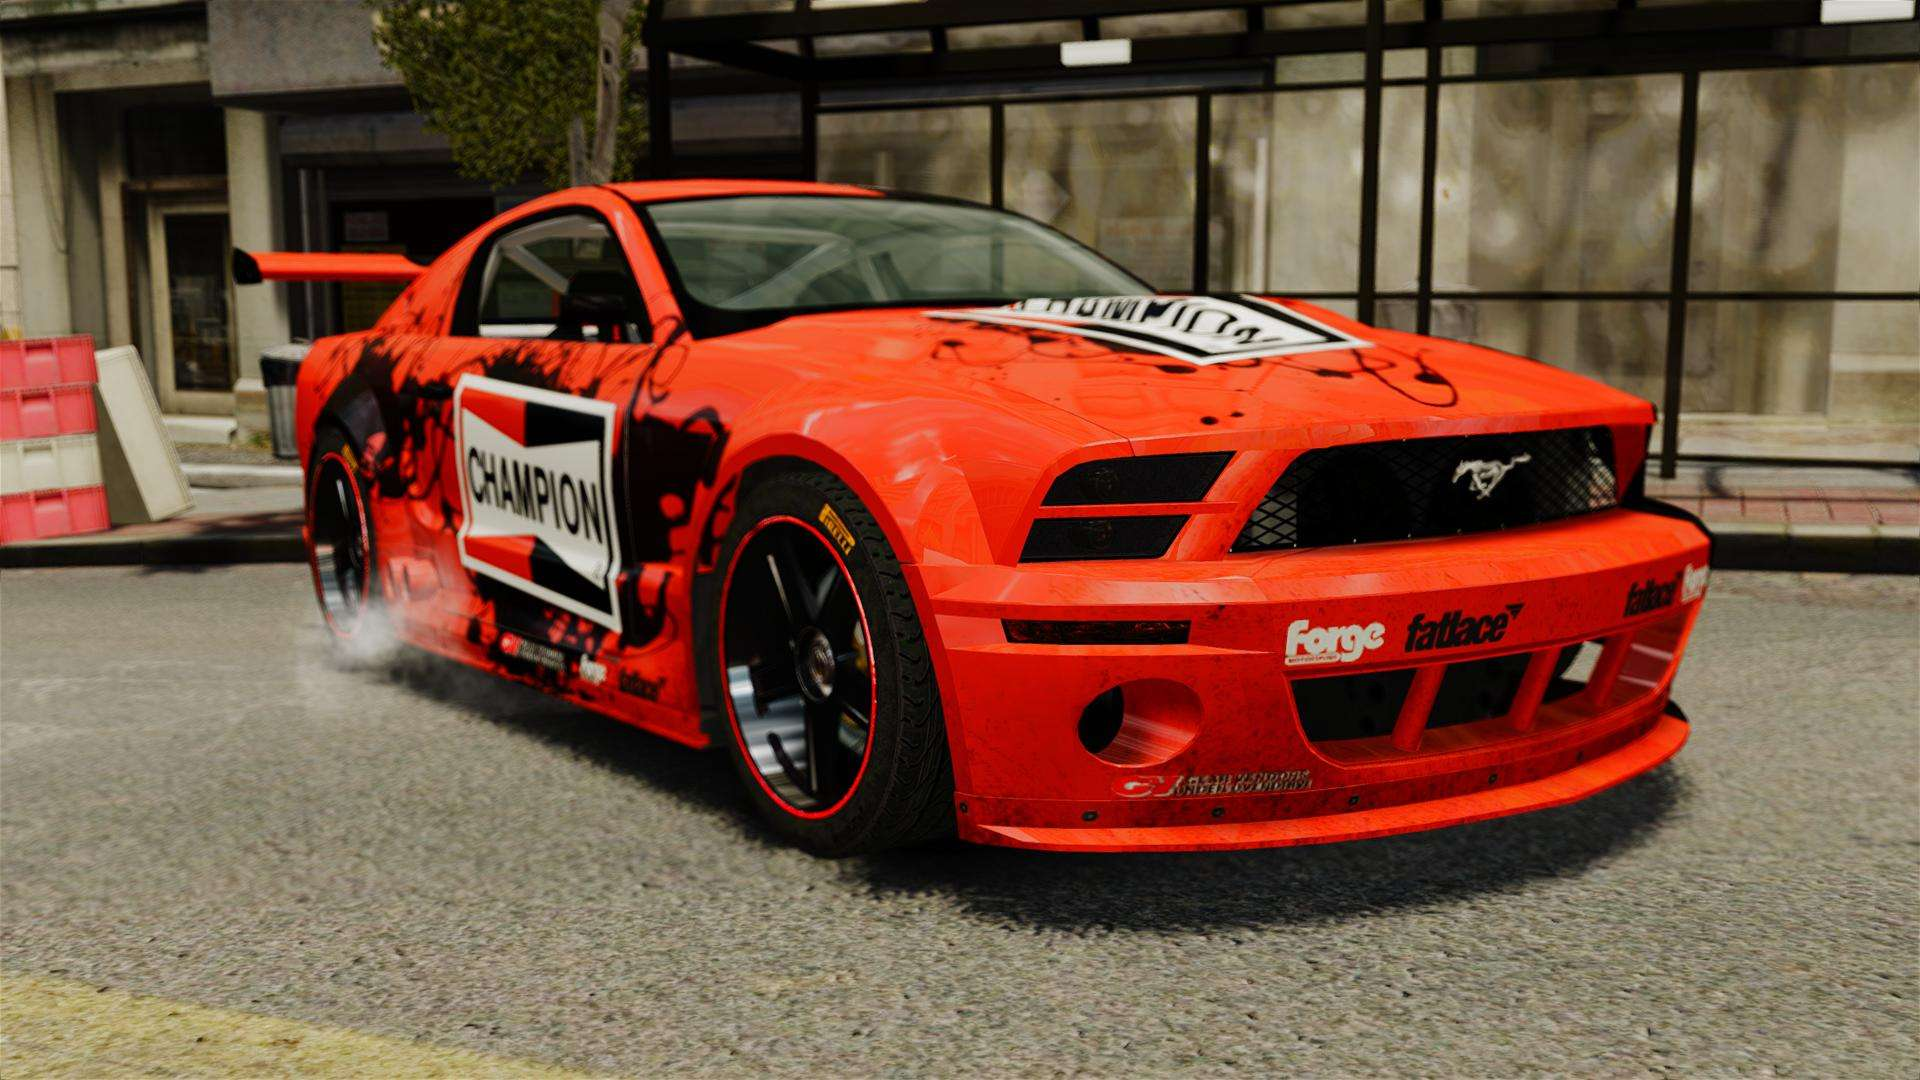 26861 Ford Mustang Gtr in addition Remington together with 19995 London City Bus additionally 26858 Audi R8 Spyder as well 32638 Dodge Grand Caravan 2005 Taxi Nyc. on gta 5 patriot